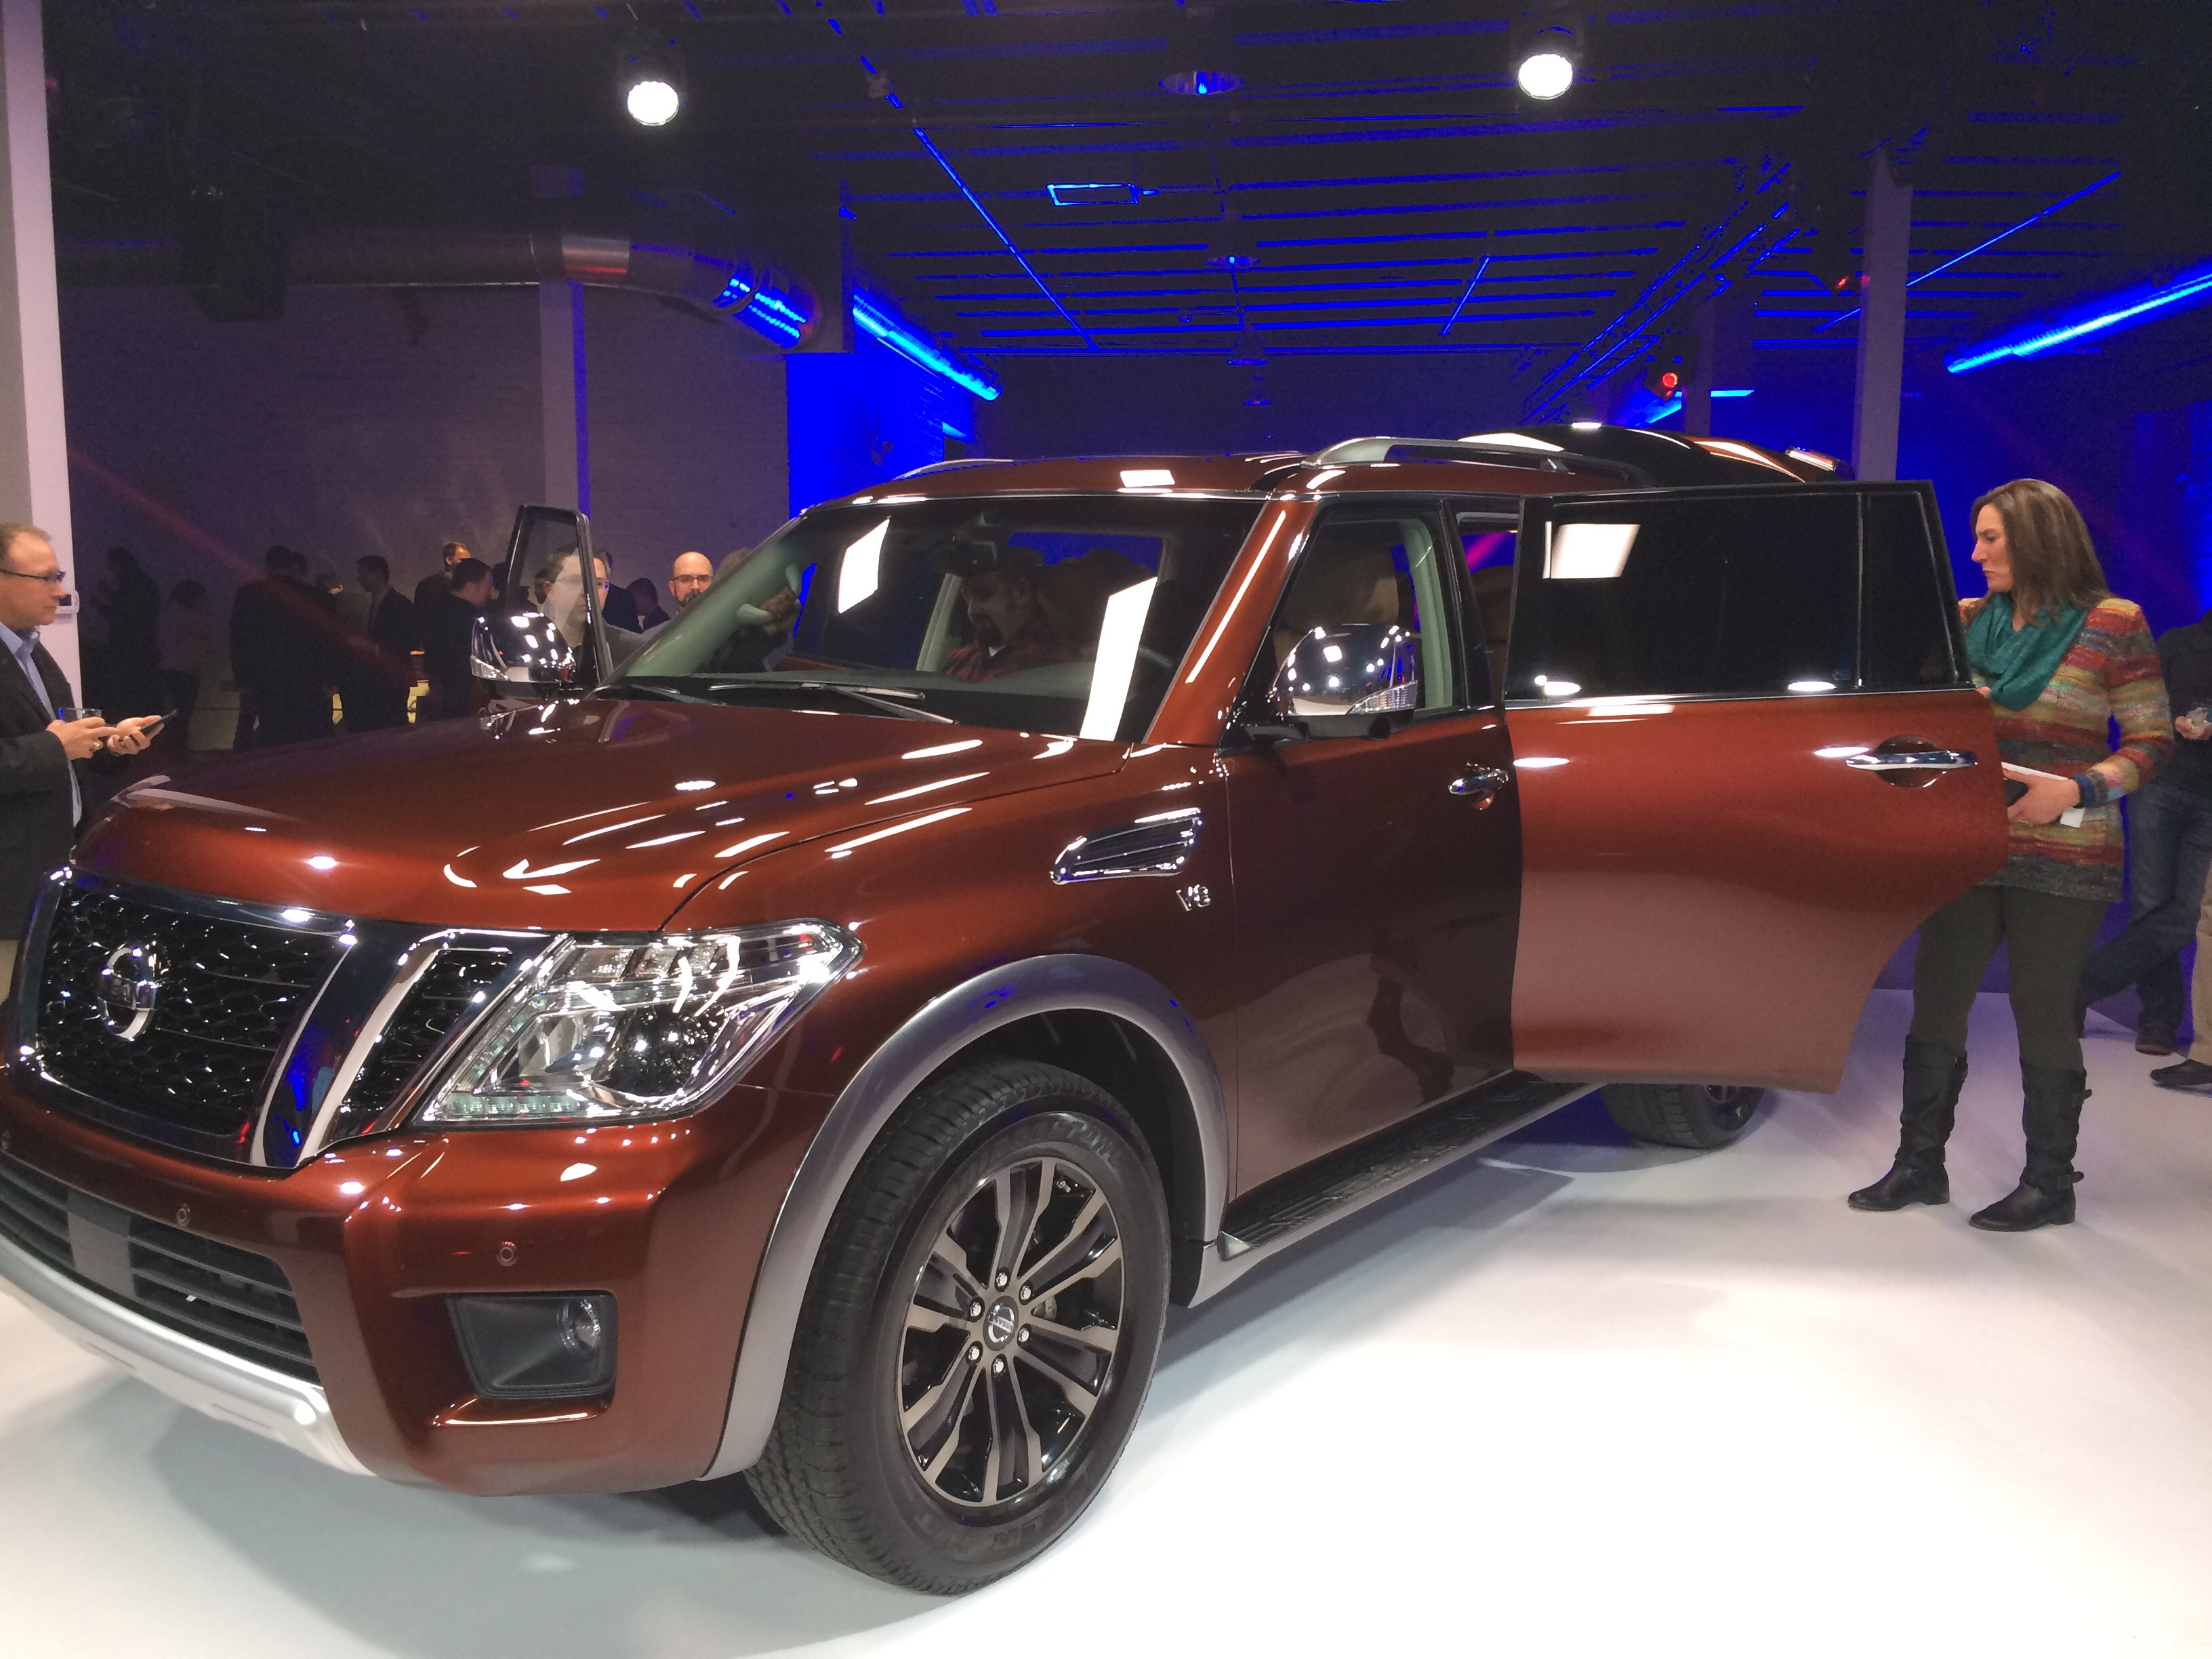 Nissan Goes Upscale With New Armada SUV Aims at Chevy Tahoe